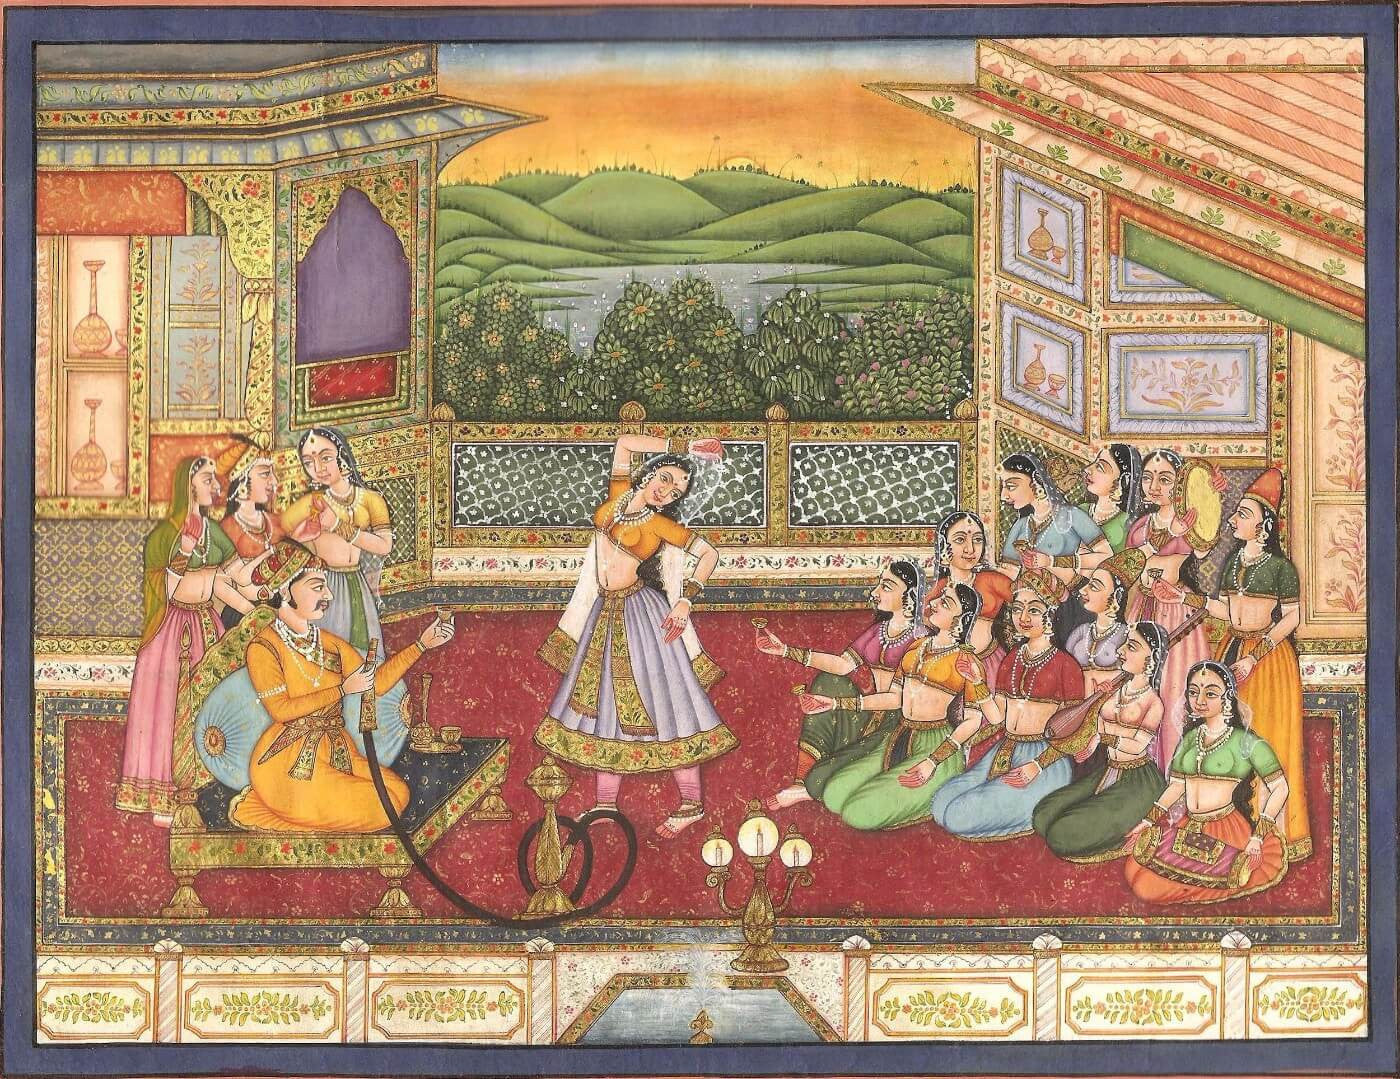 Indian Miniature Art - Mughal Painting - Evening - Framed Prints by  Kritanta Vala   Buy Posters, Frames, Canvas & Digital Art Prints   Small,  Compact, Medium and Large Variants